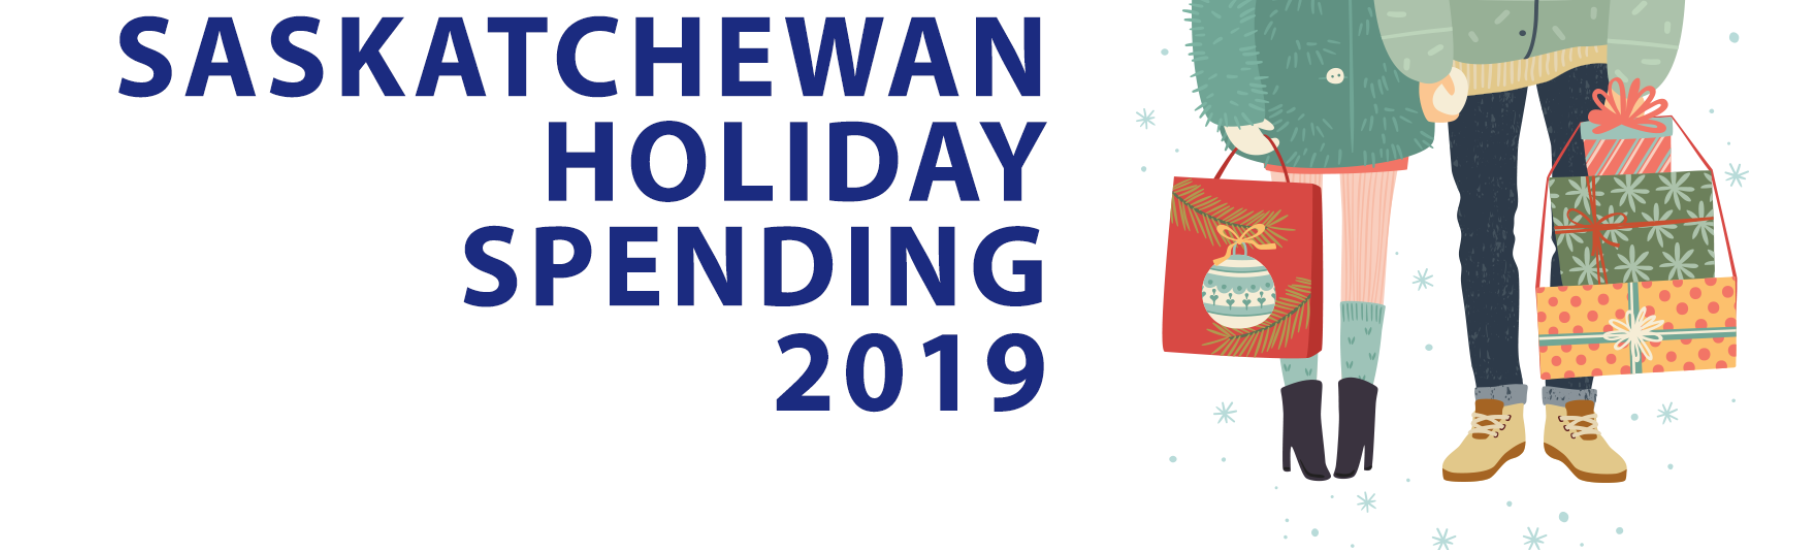 Holiday Spending 2019, Insightrix Research, SaskWatch Research